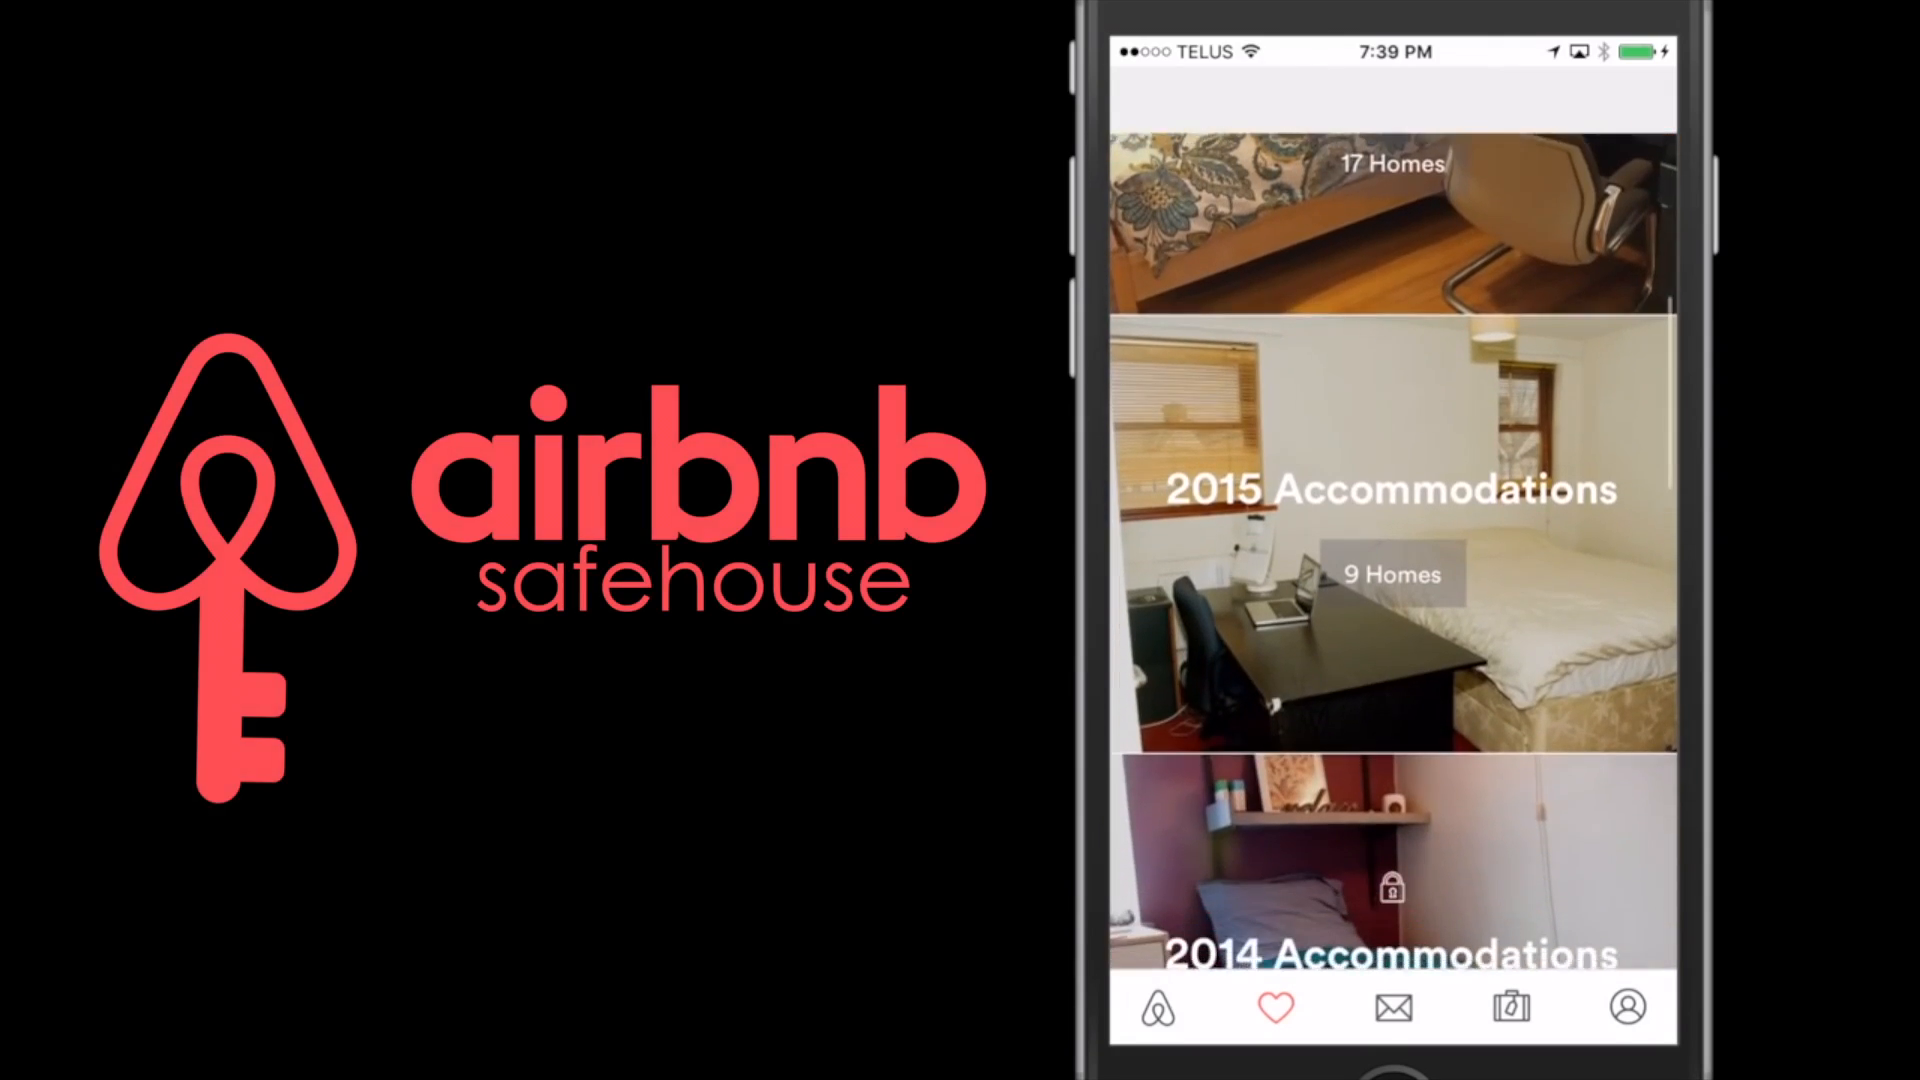 Thumbnail for Airbnb Safehouse